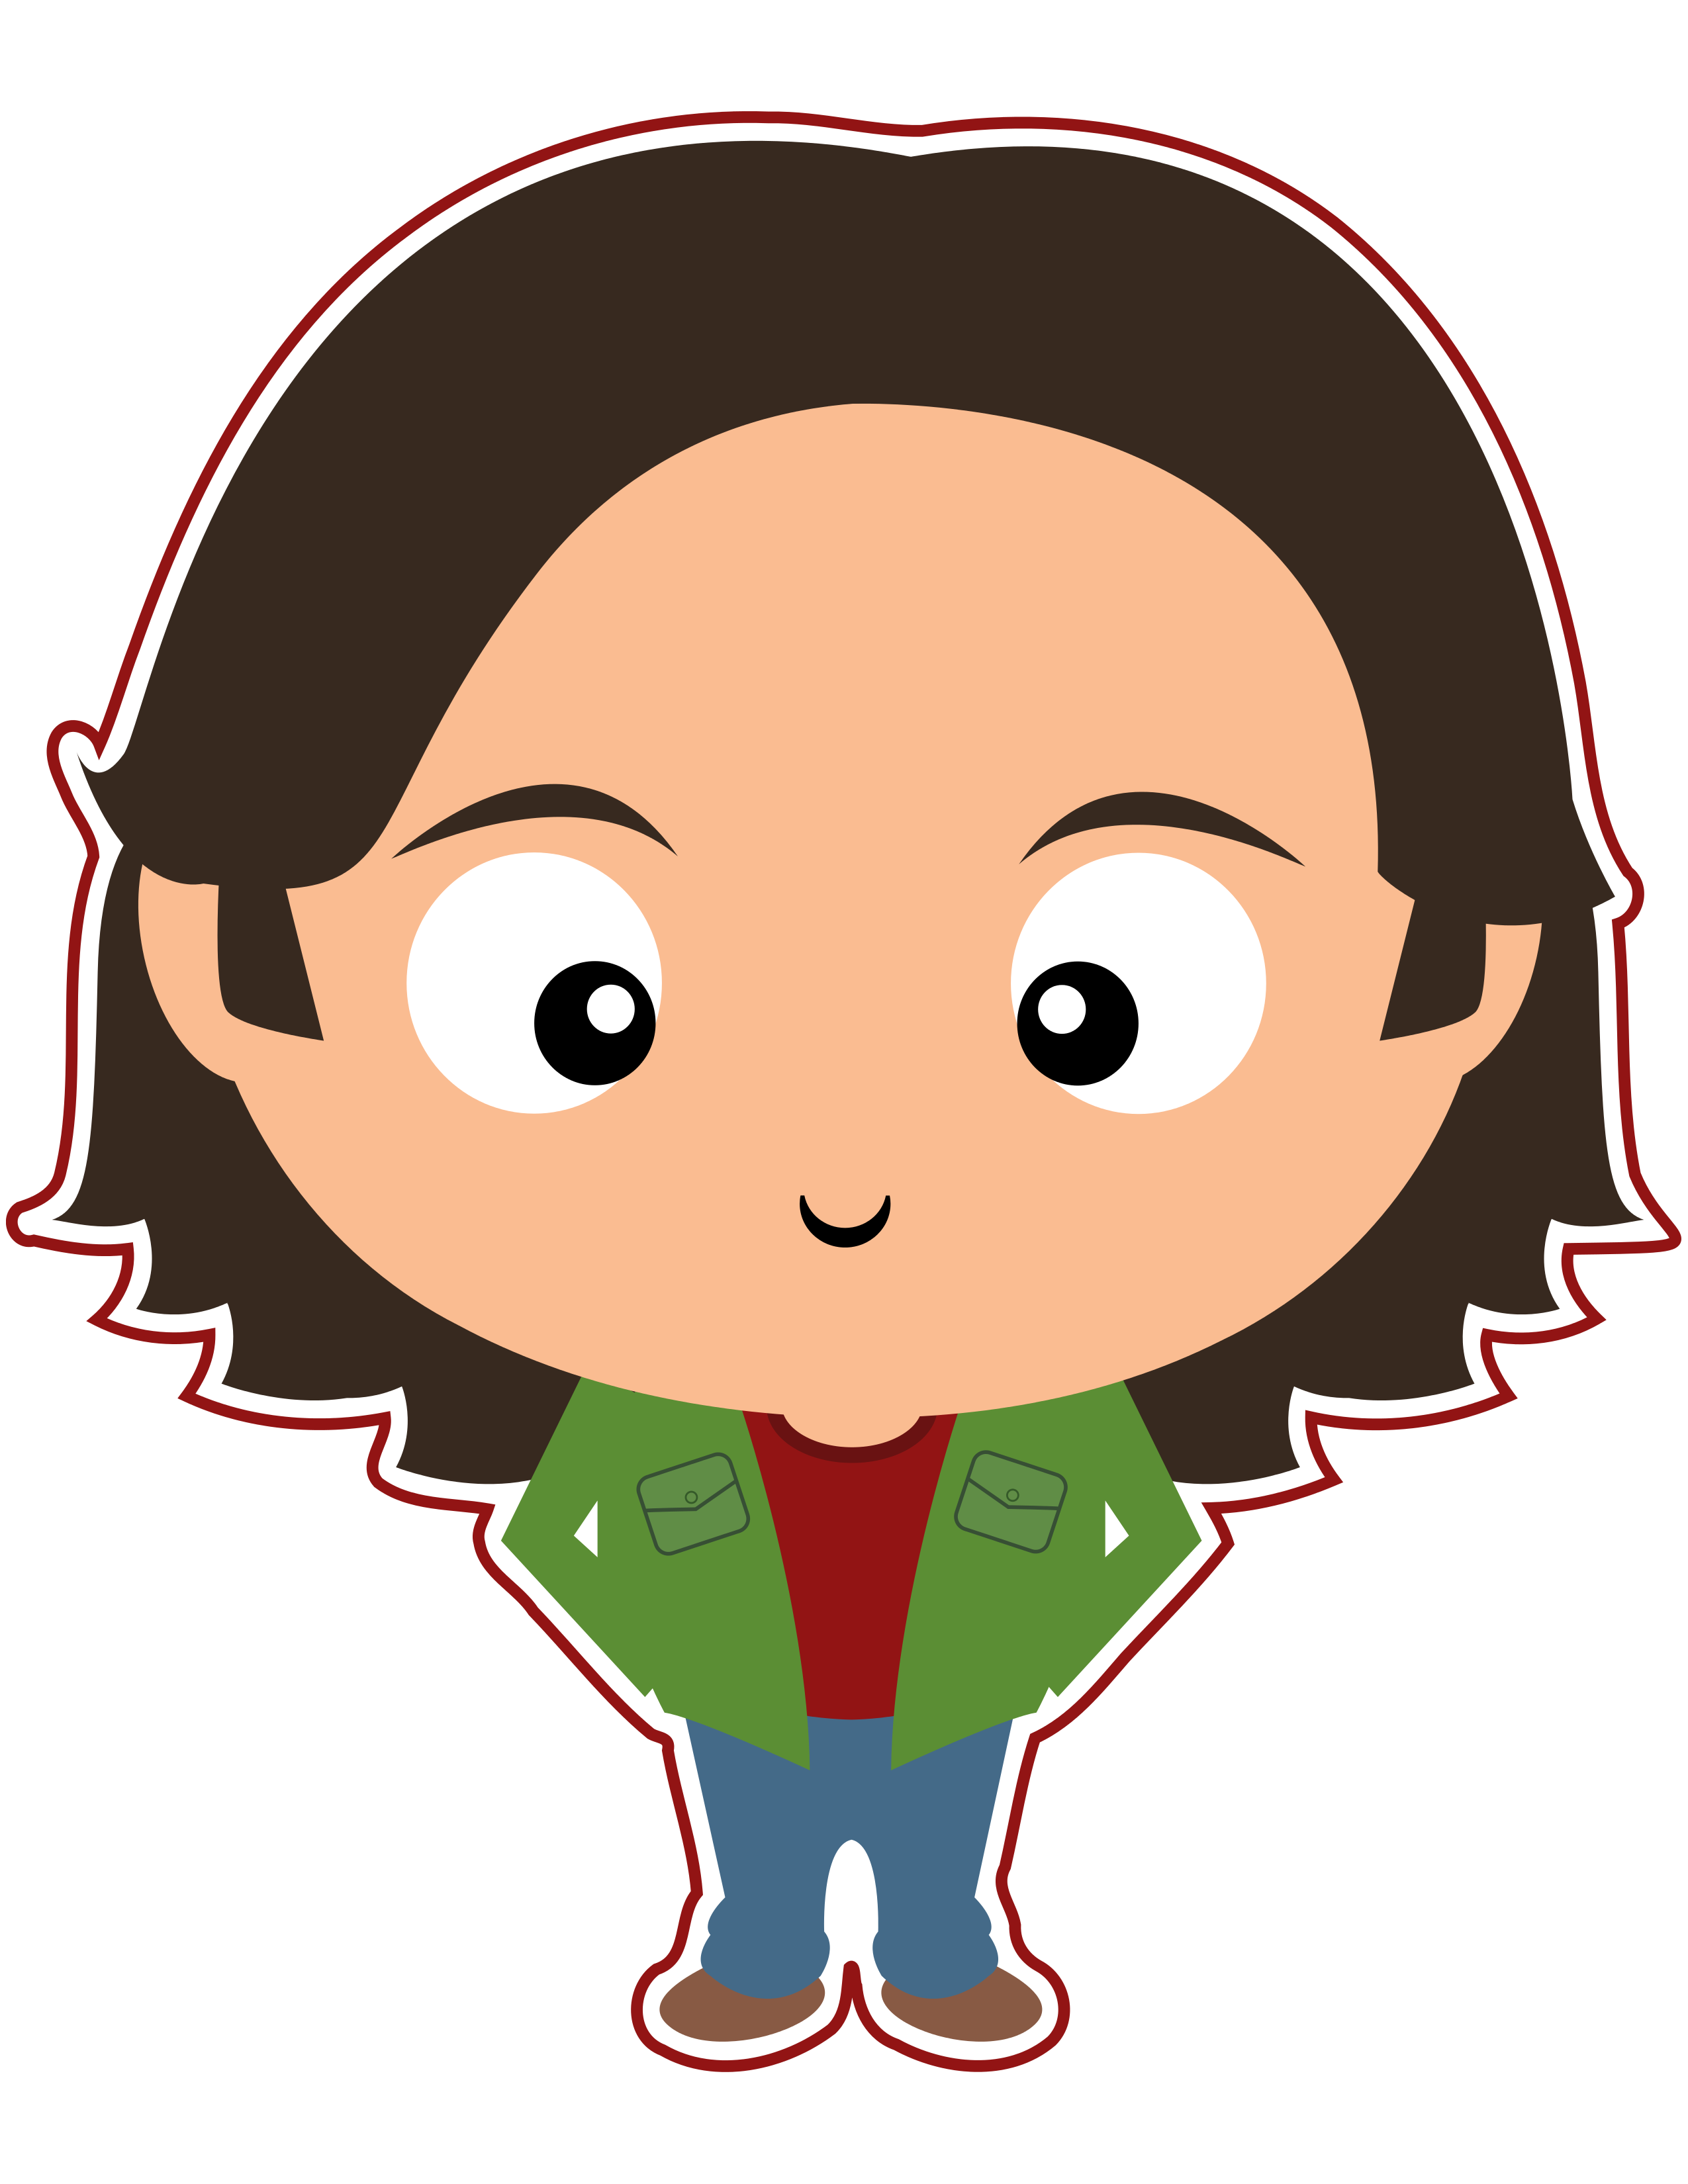 Jared padalecki clipart svg royalty free library Supernatural Clipart - Sam Winchester - Cute Funko Pop, Jared ... svg royalty free library